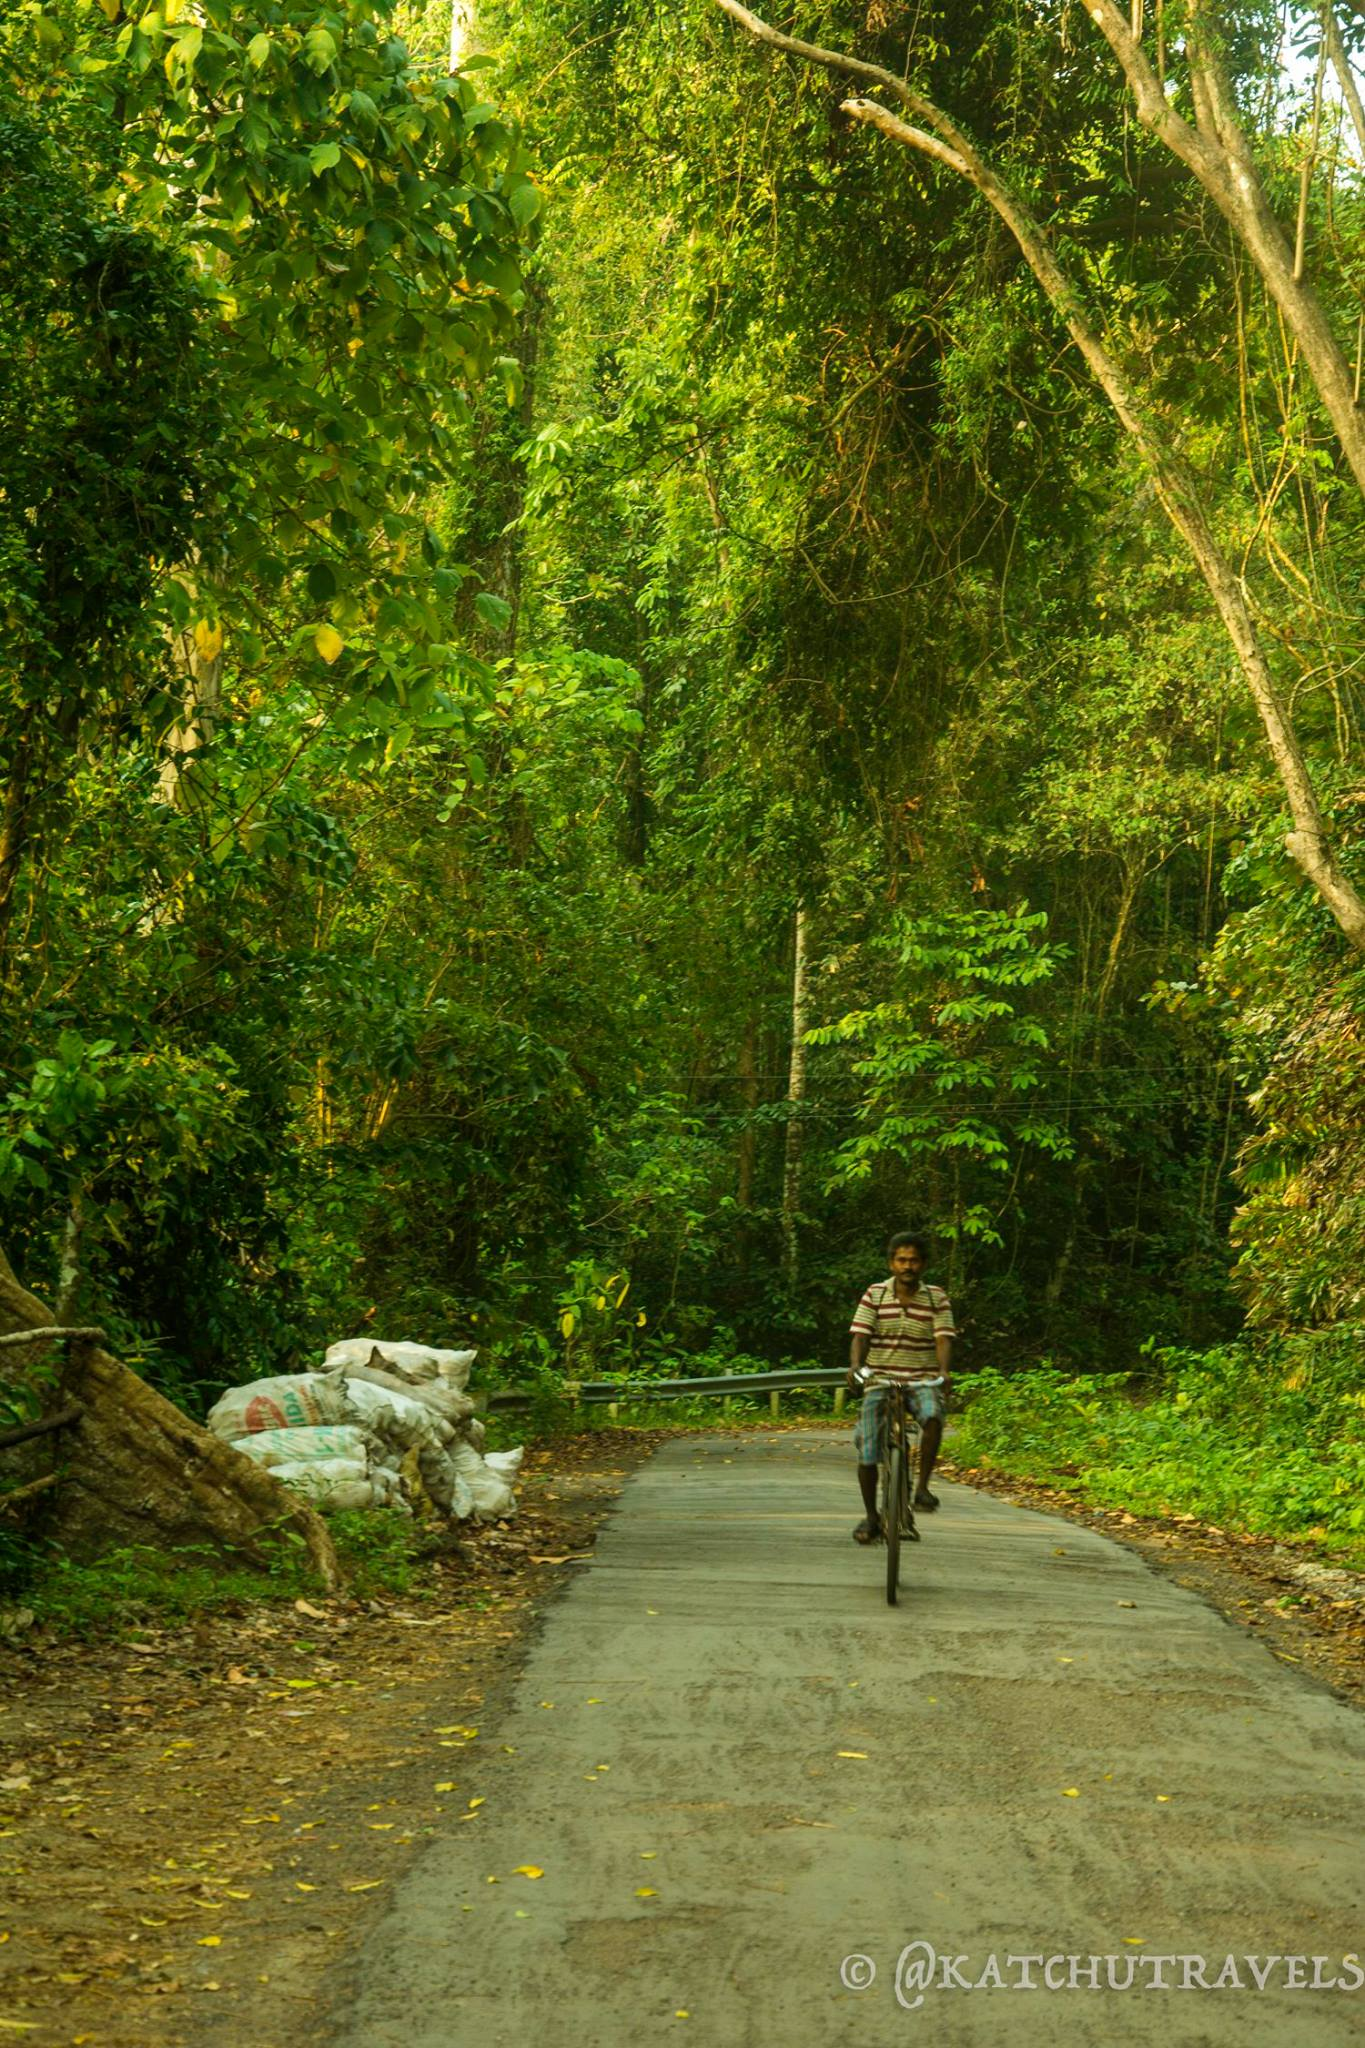 A cyclist ambling down the road inside Kalapathar Village